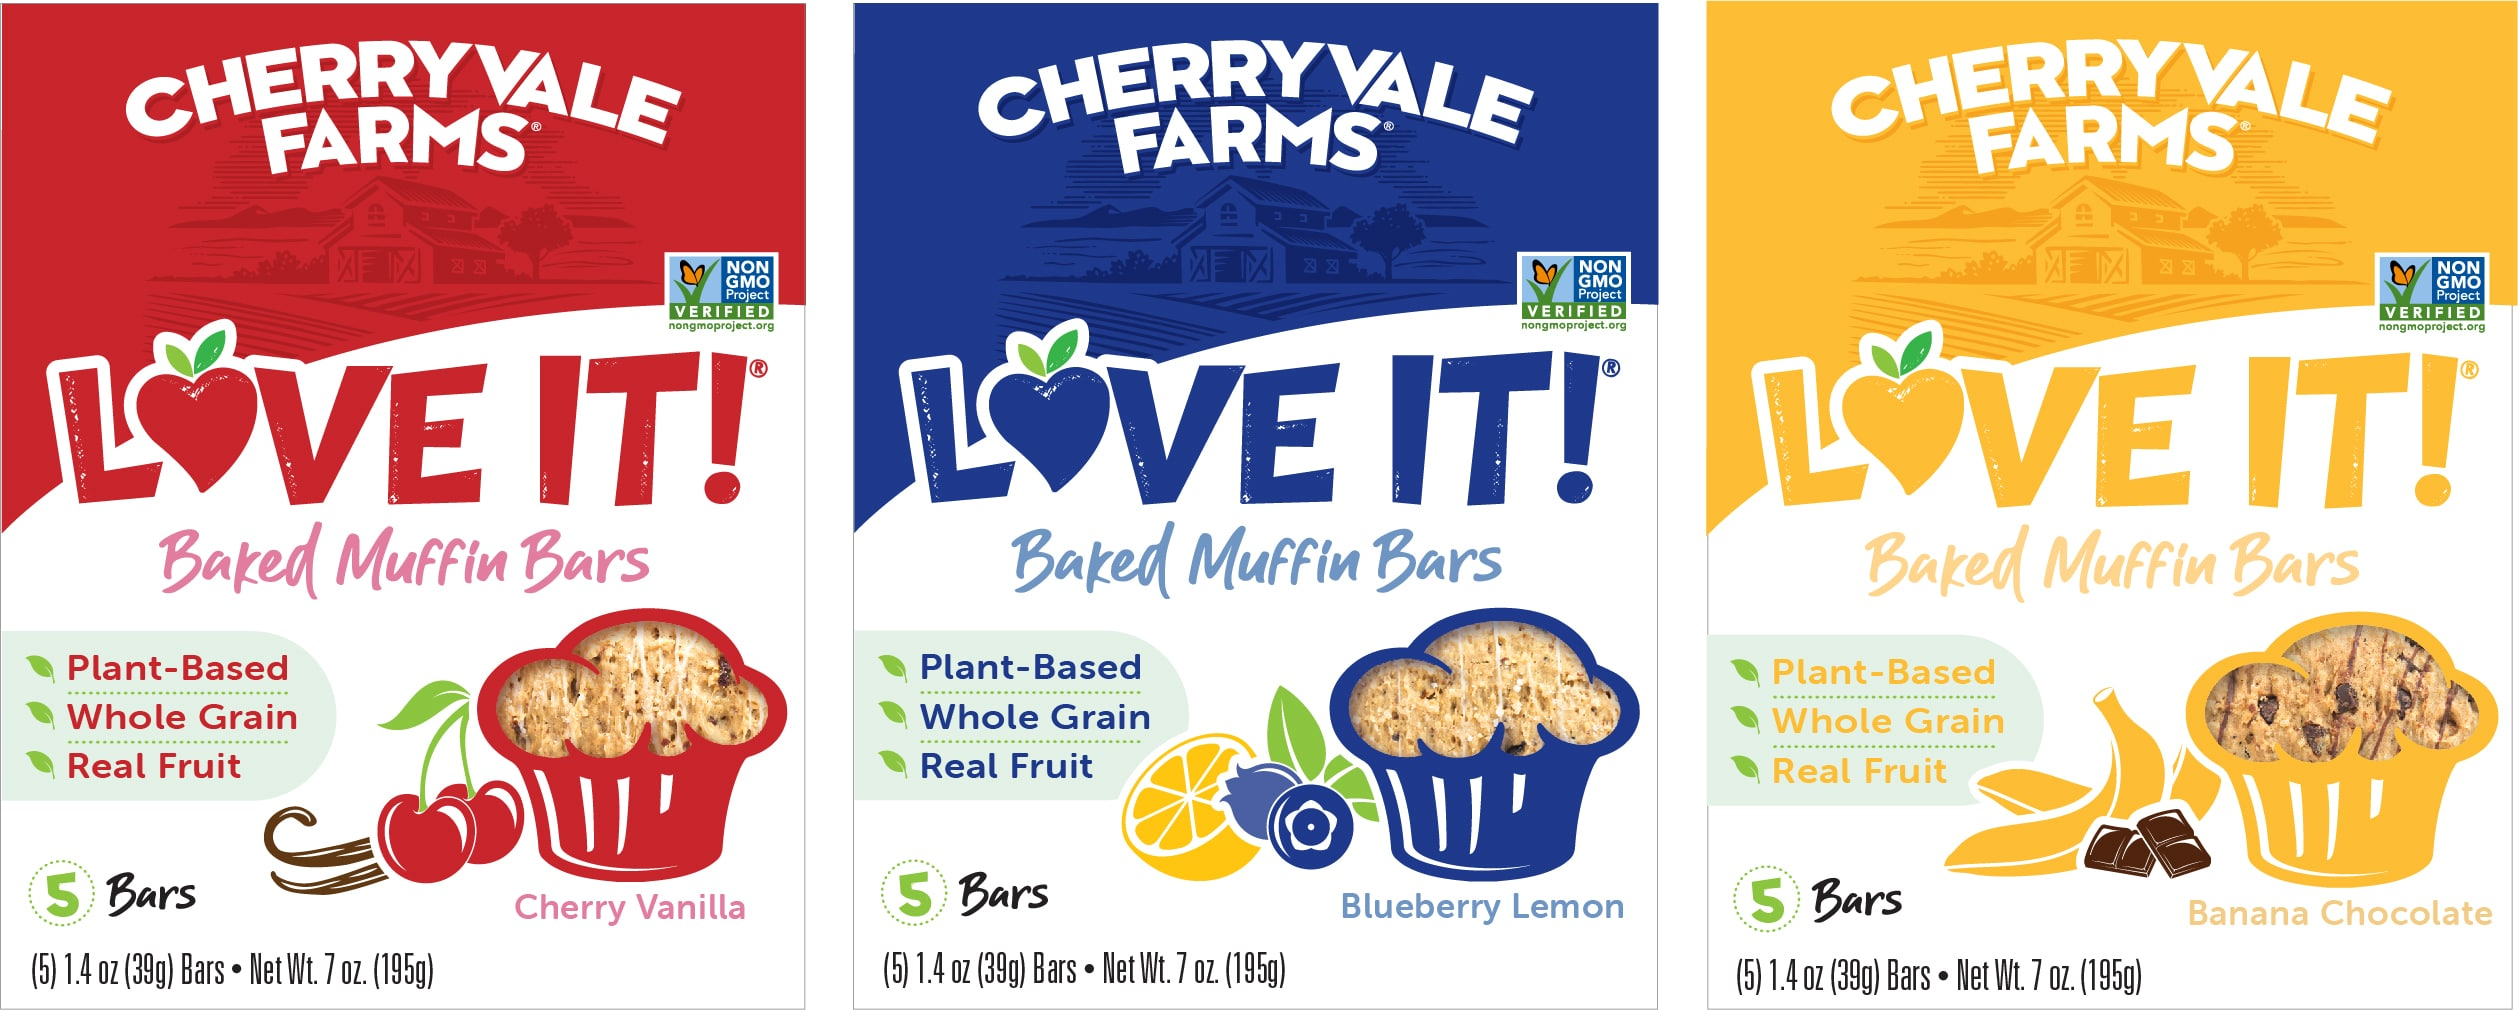 Cherryvale Farms Announces New Branding, Updated Packaging